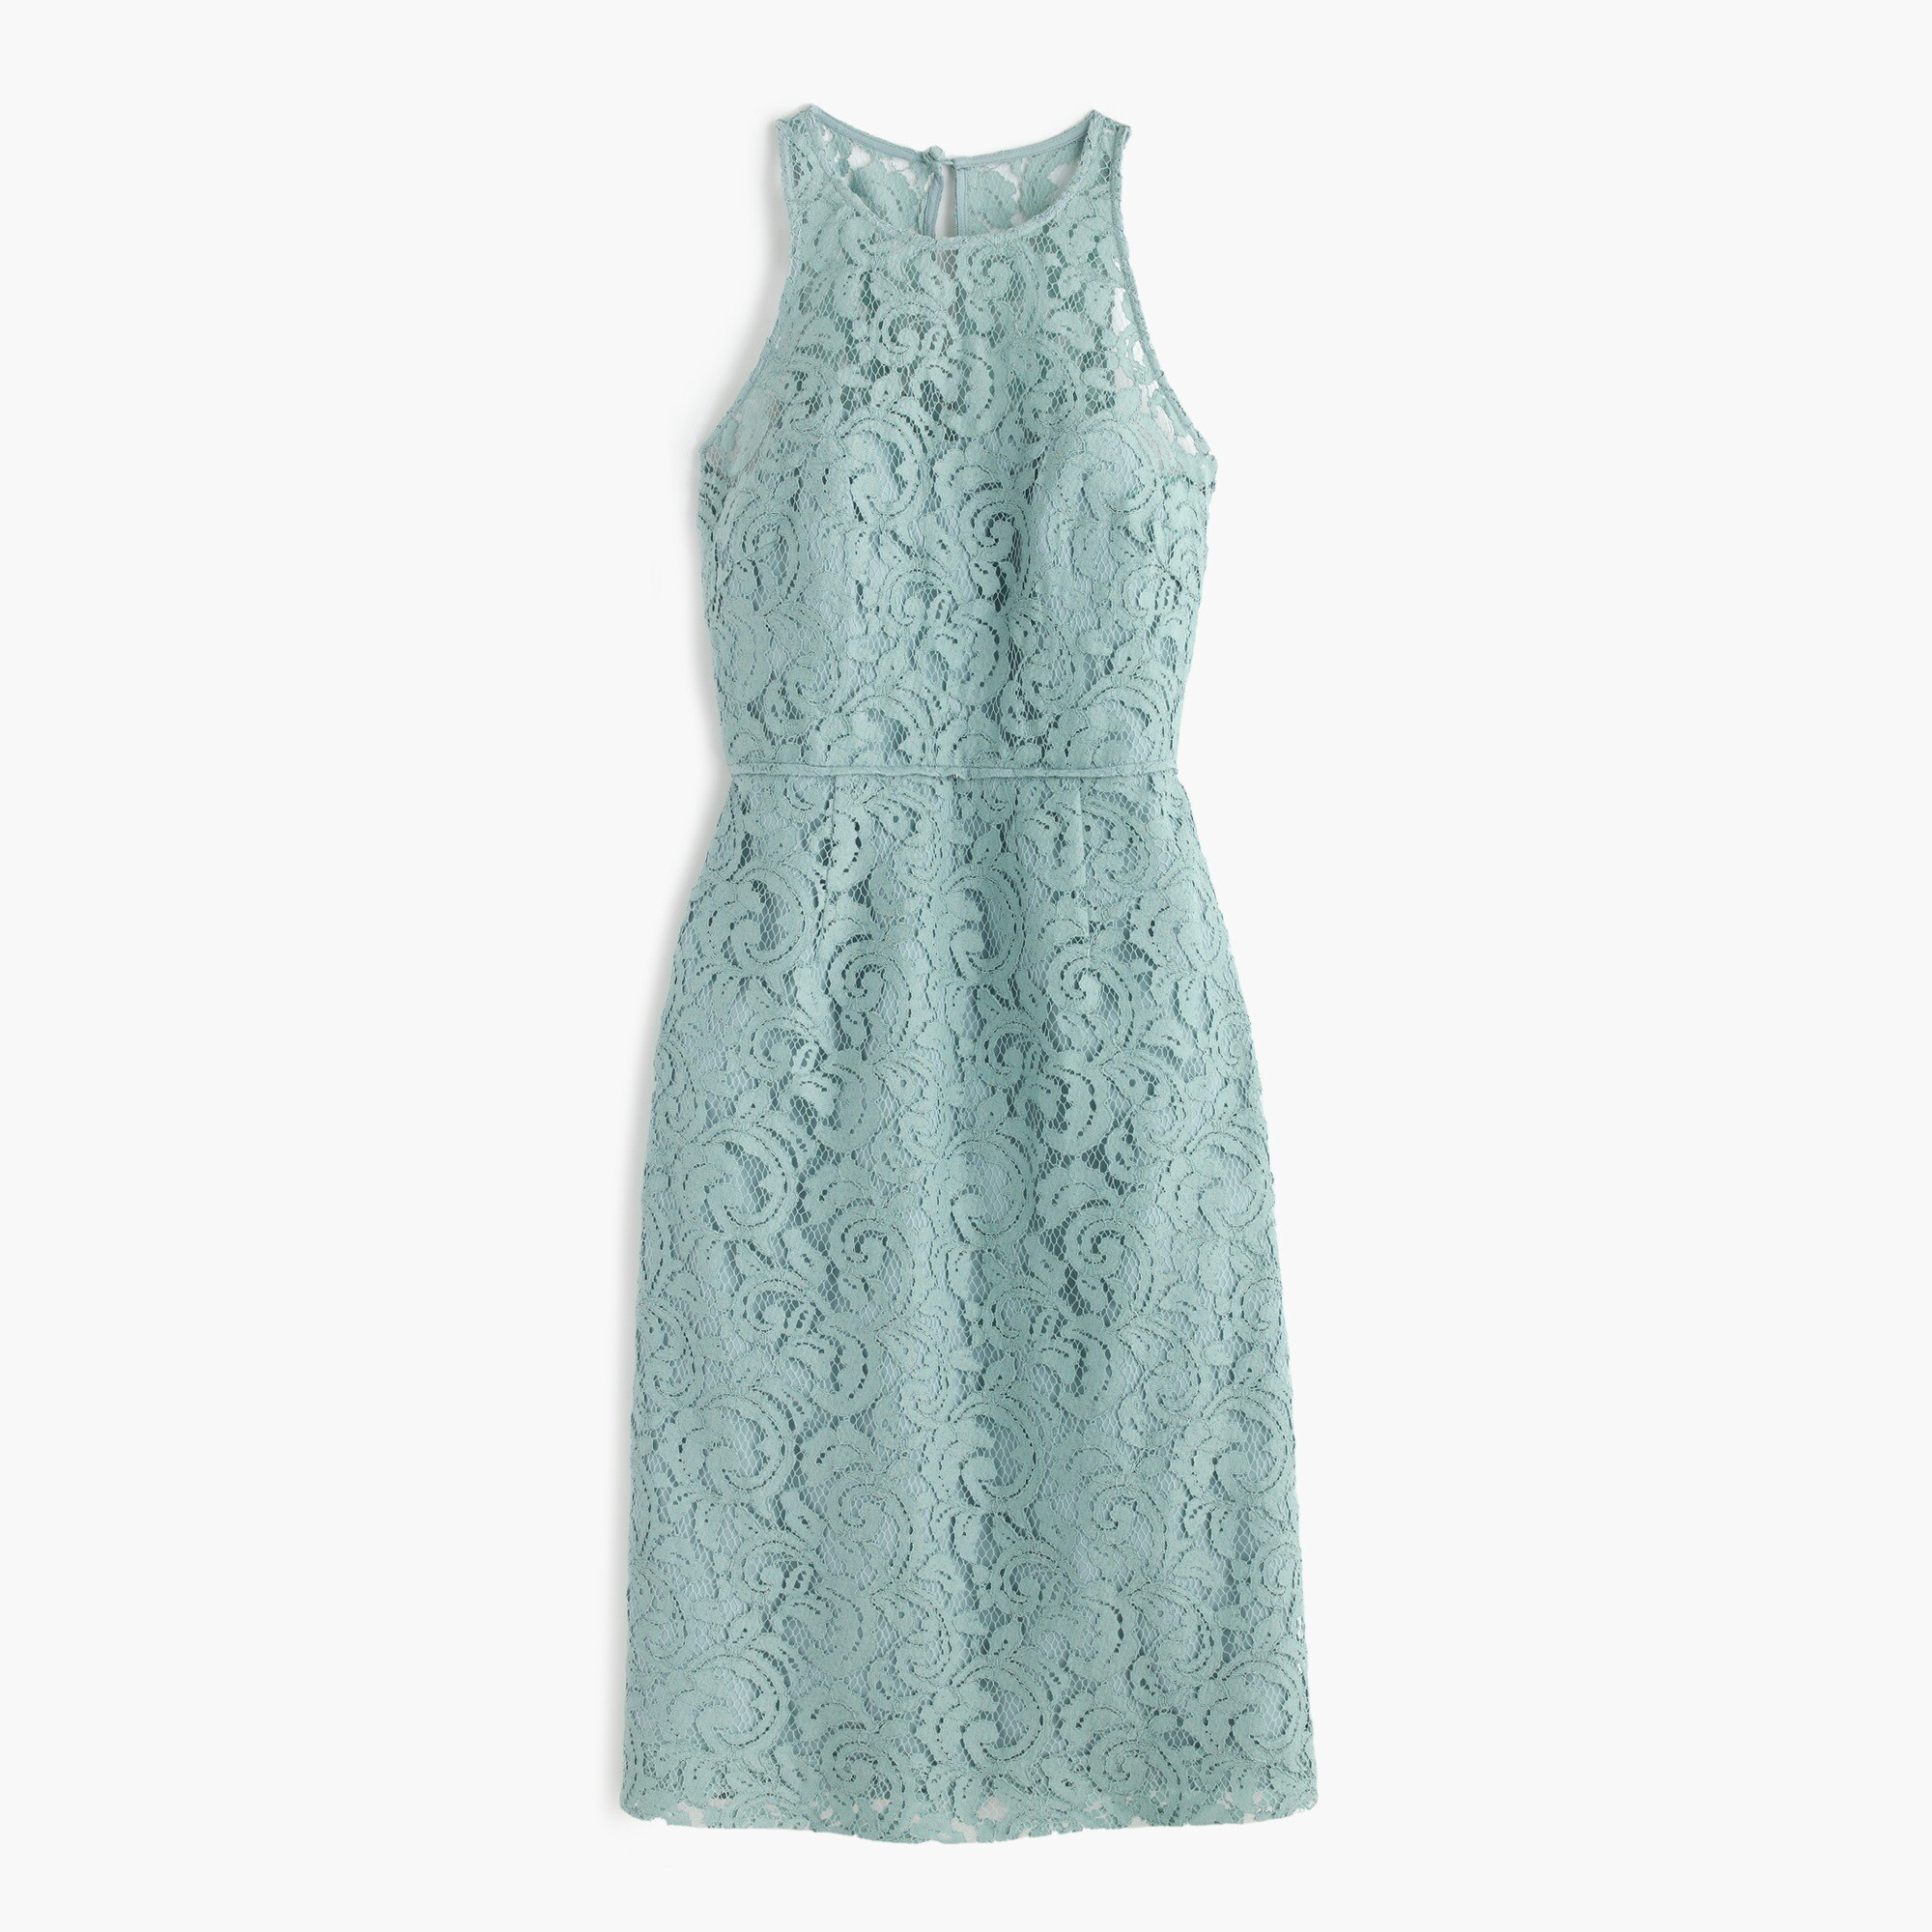 Image 2 for Pamela dress in Leavers lace